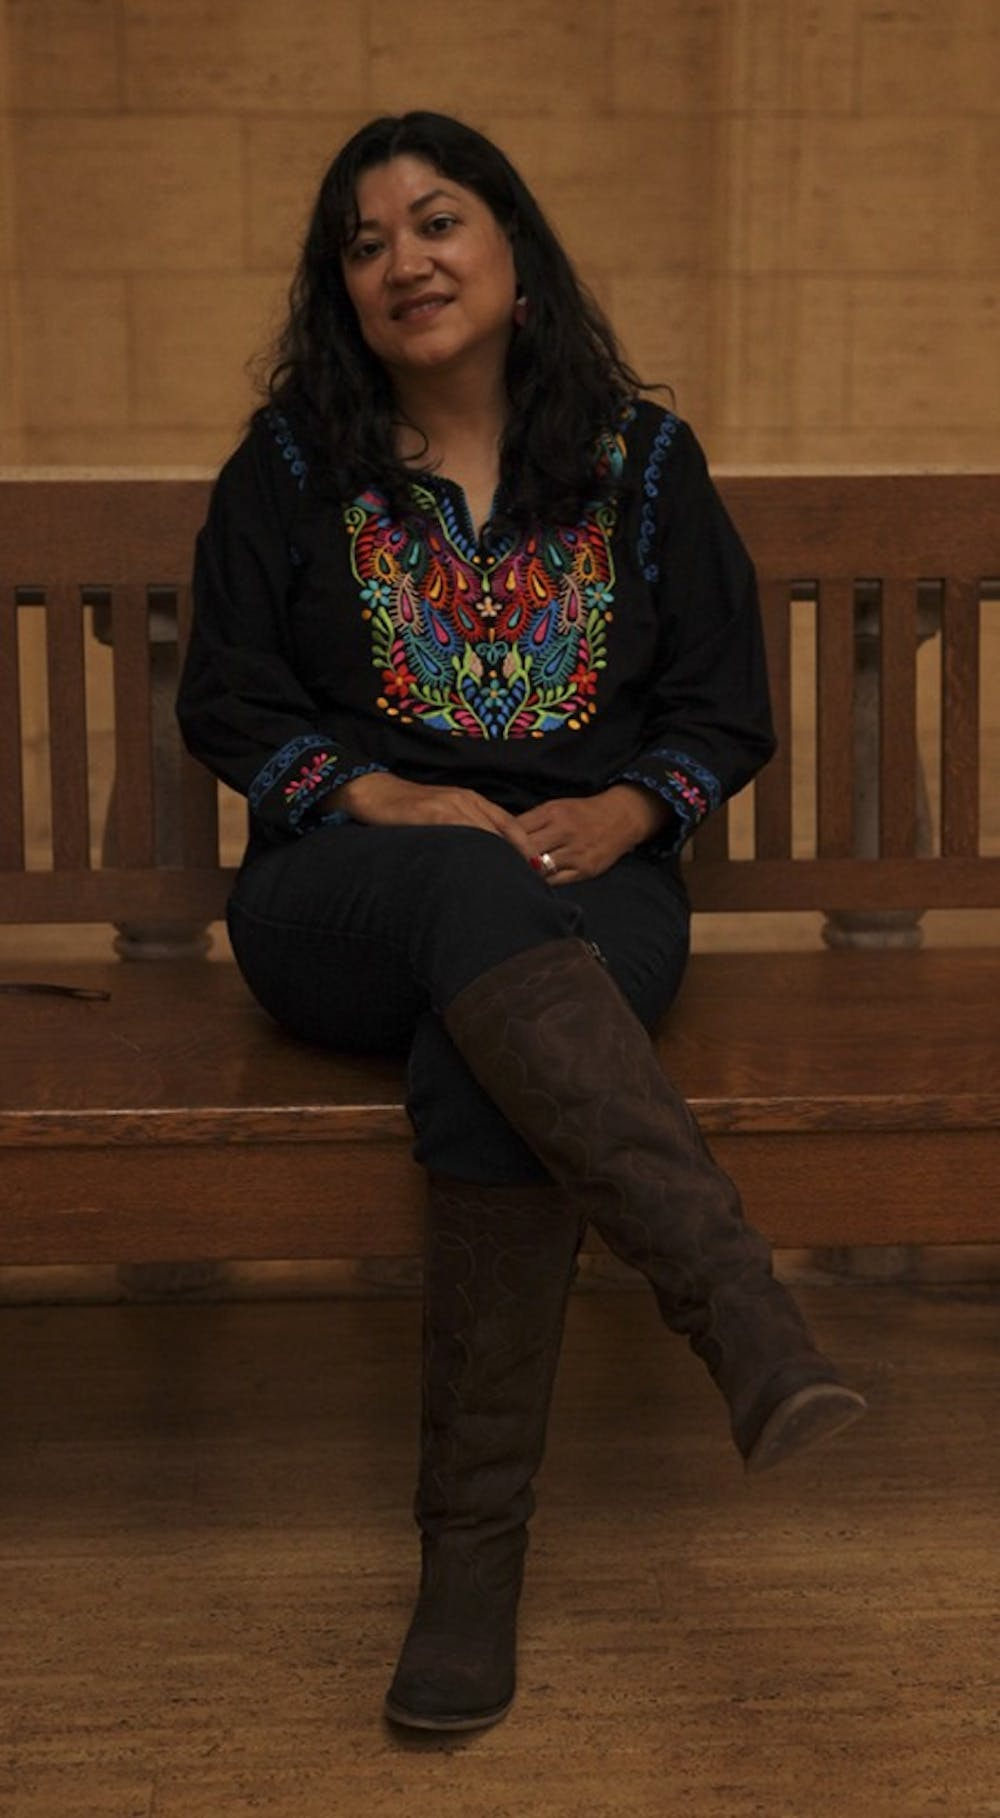 Author Reyna Grande discusses struggles of crossing US border